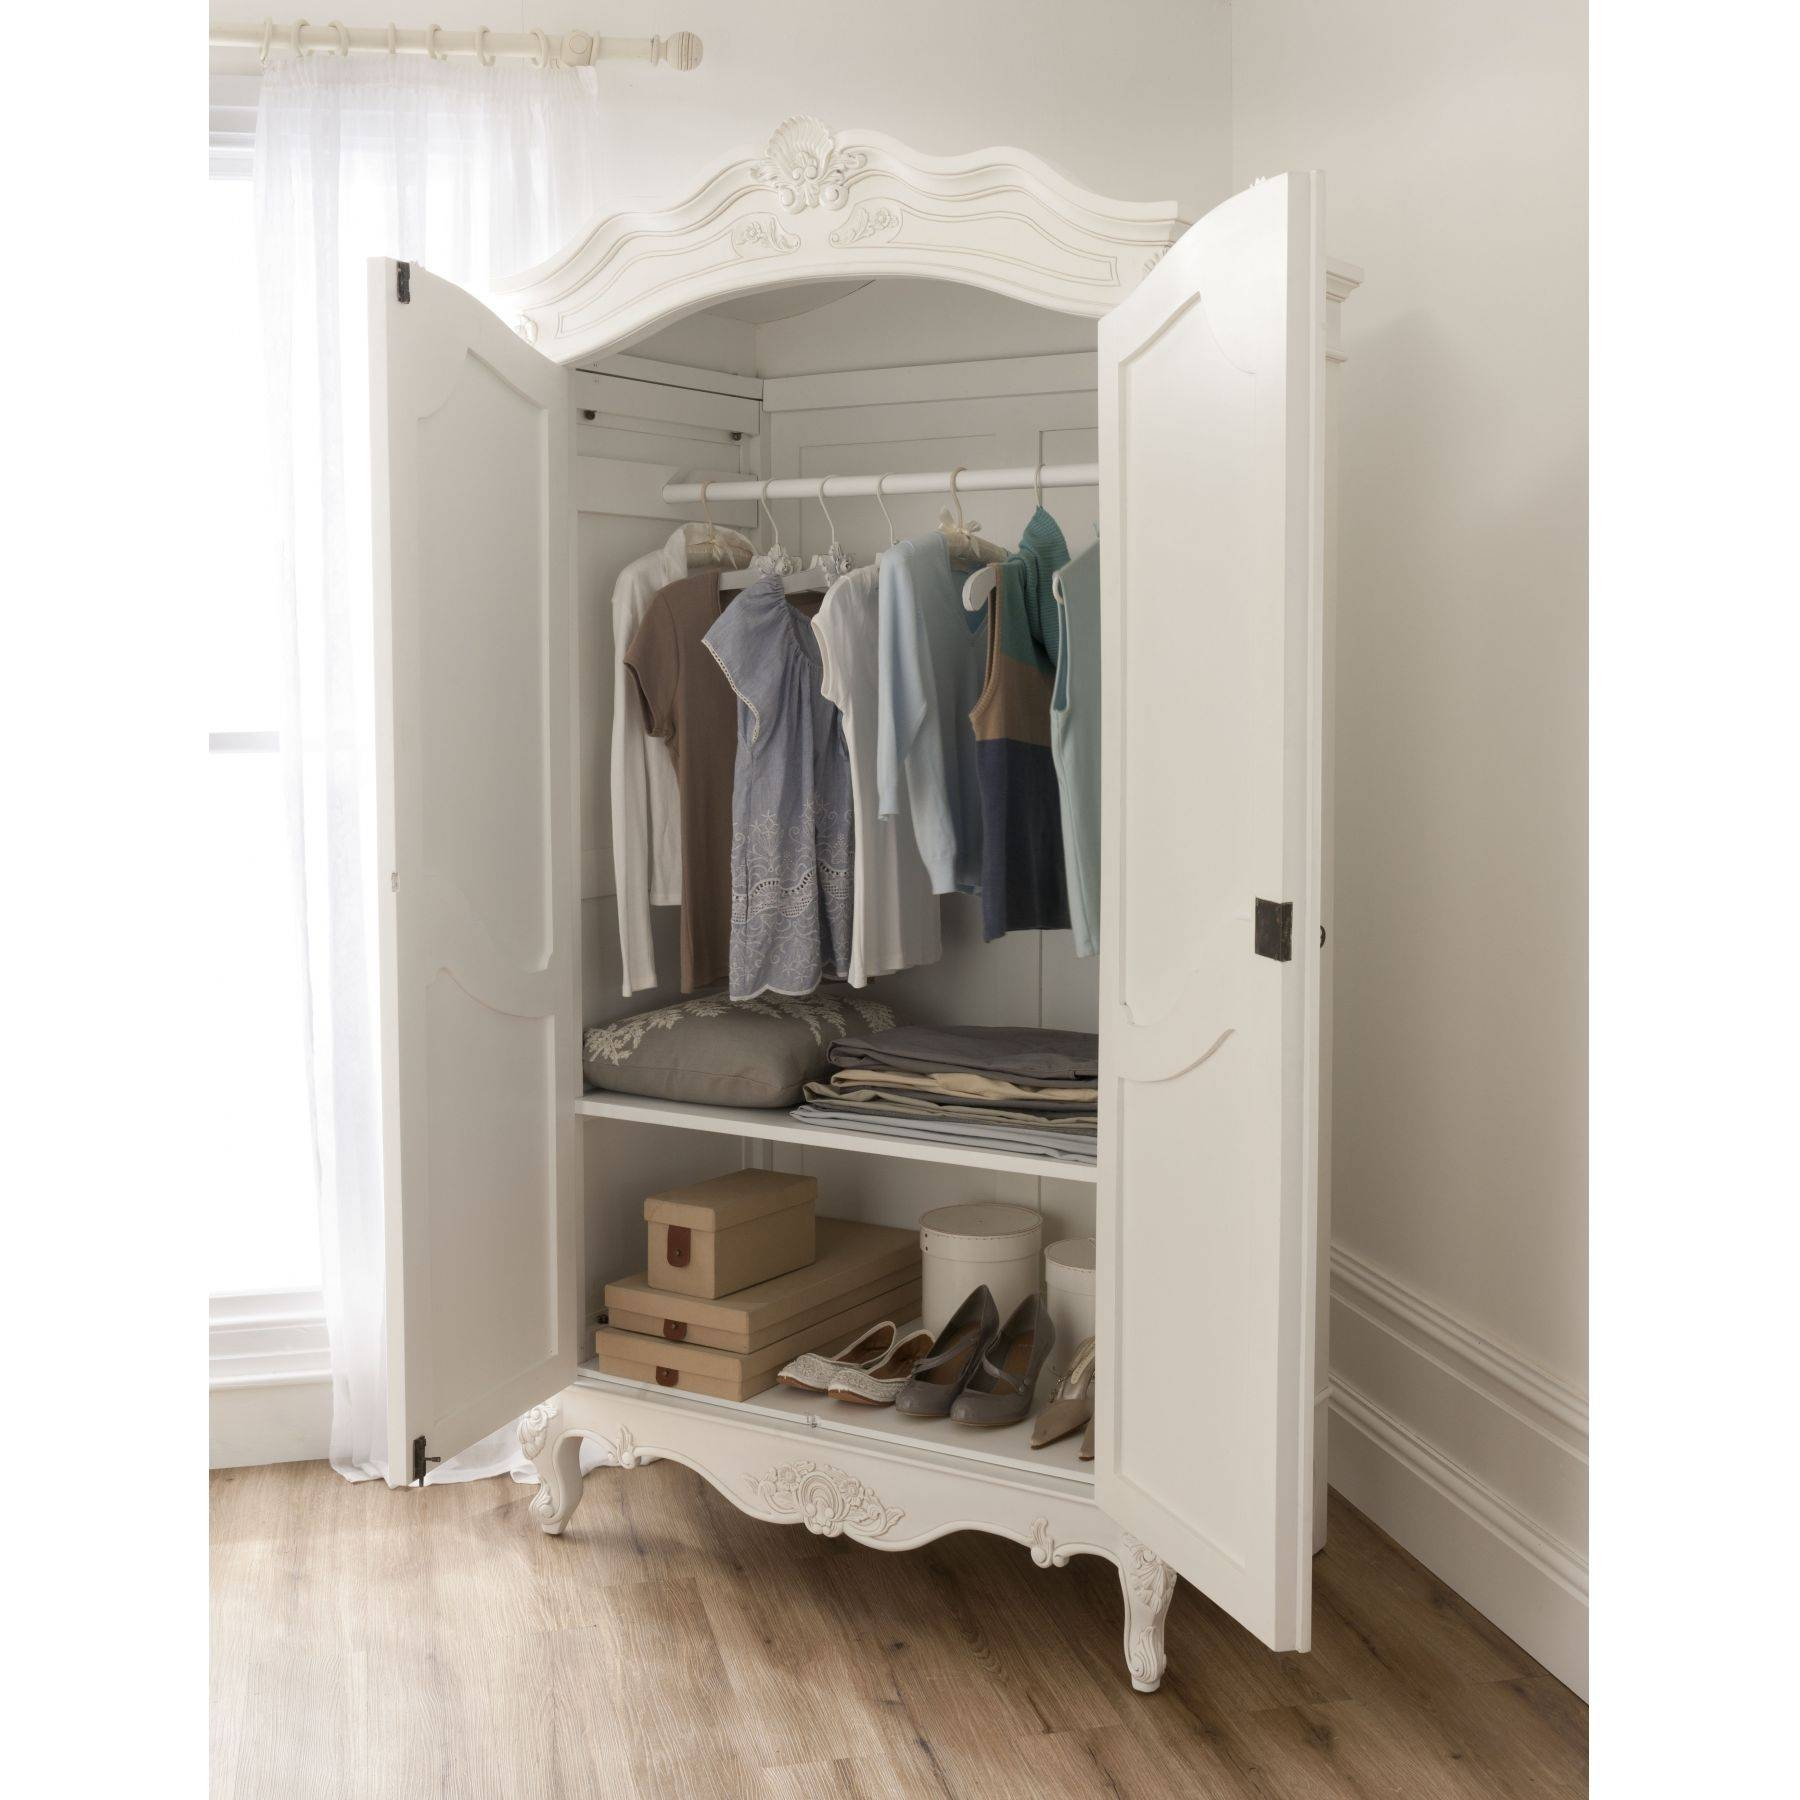 Baroque Antique French Wardrobe Is Available Online From within White Wardrobes French Style (Image 2 of 15)